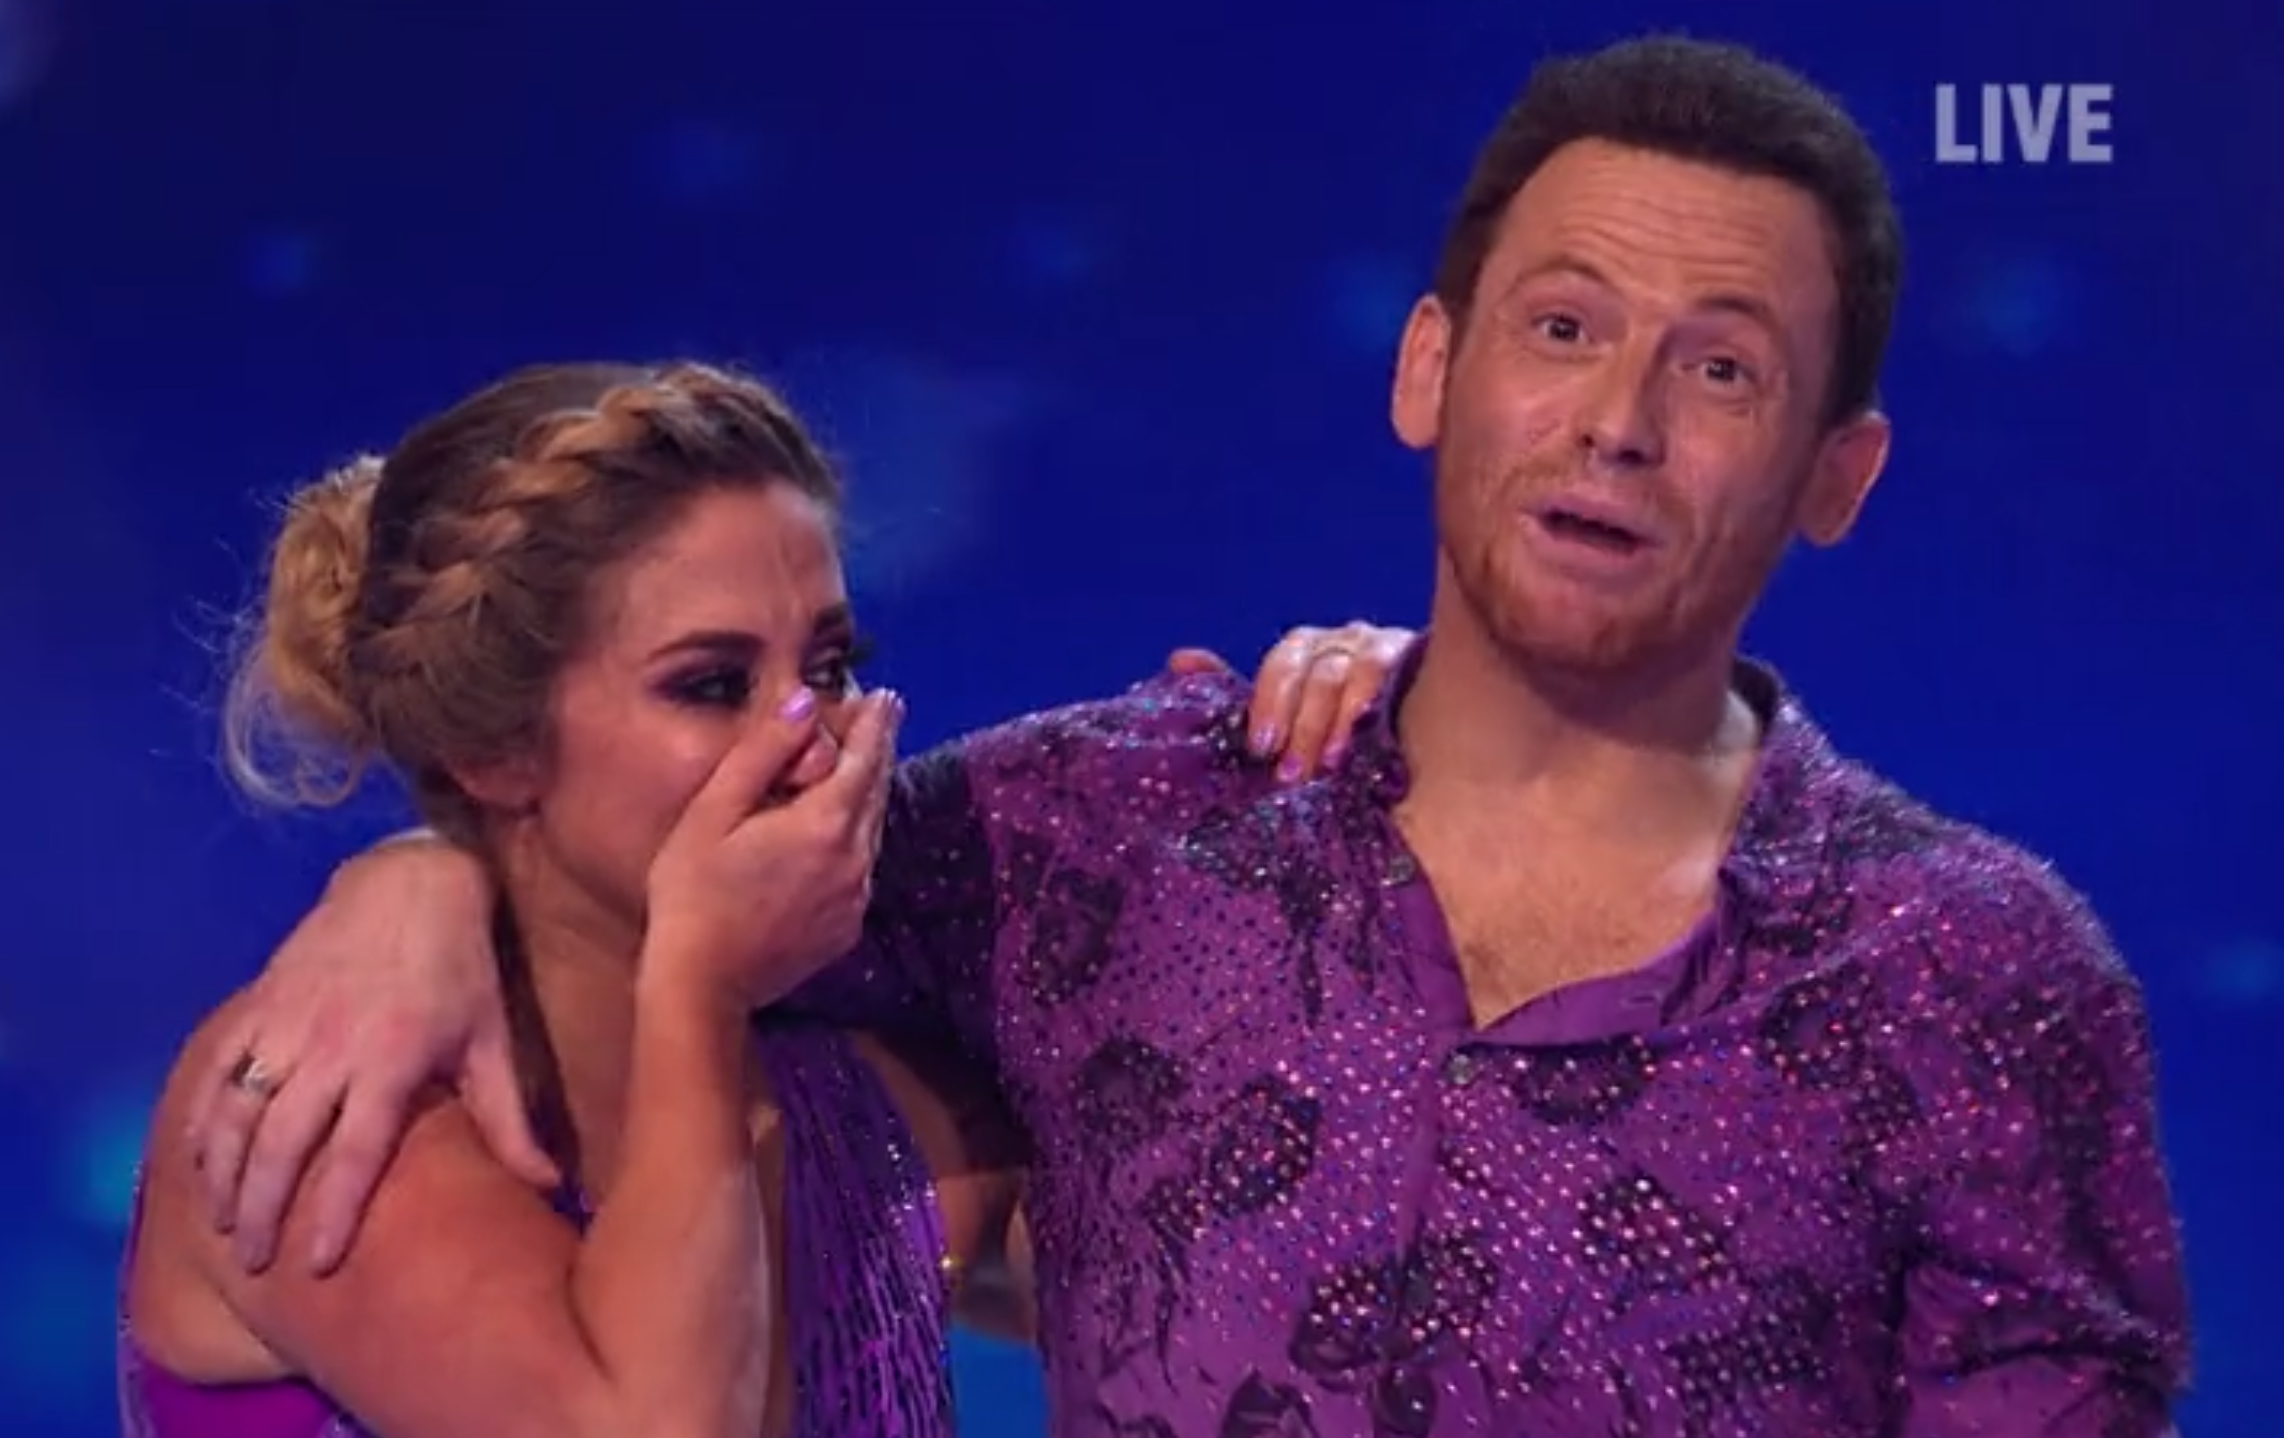 Stacey Solomon 'immensely proud' of Joe Swash after he wins Dancing On Ice